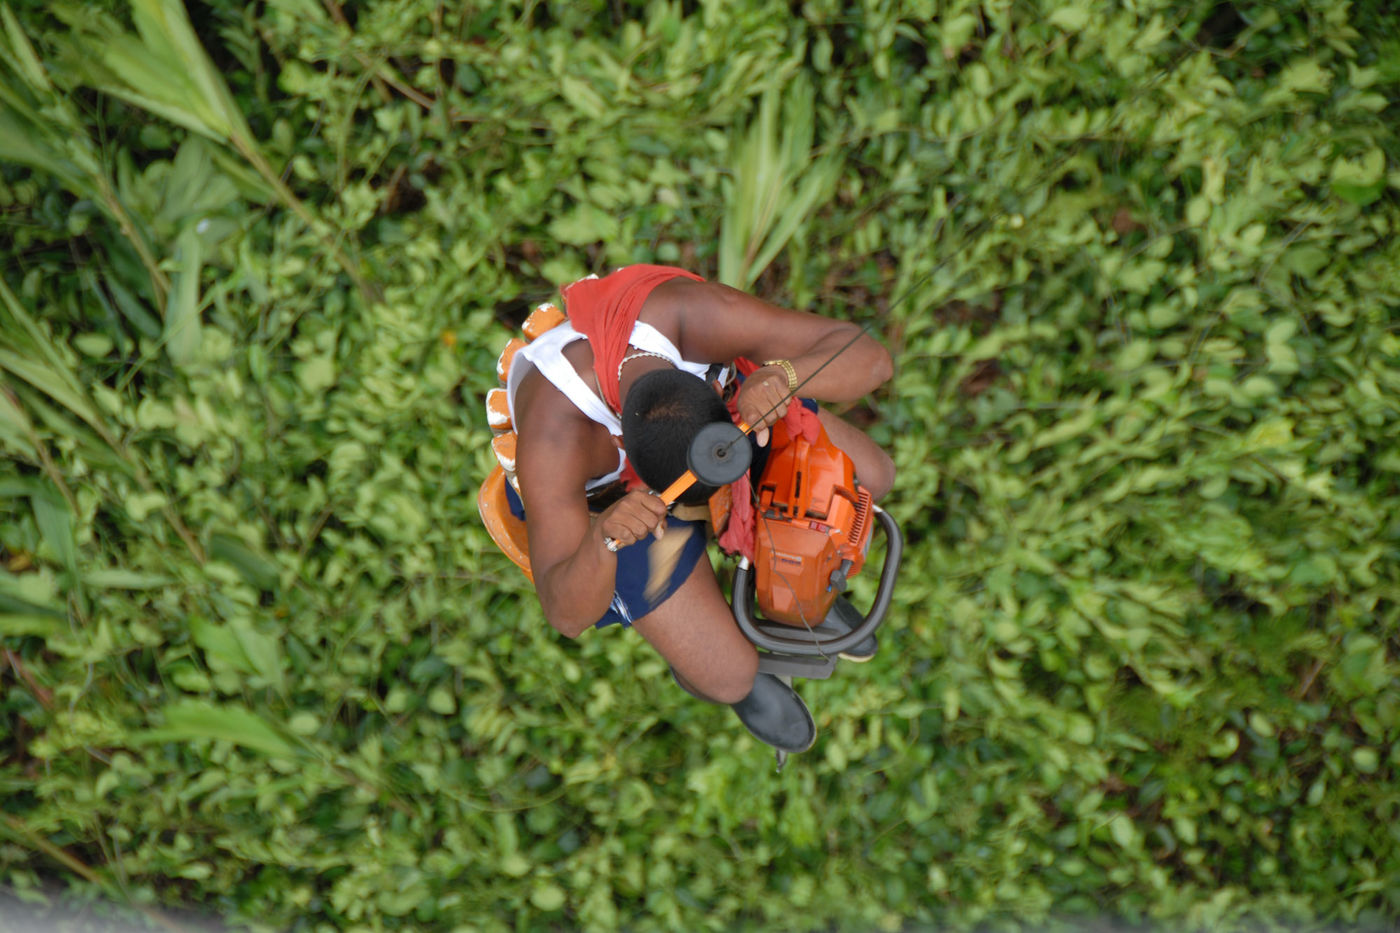 A man descends from a helicopter, lowered on a line into a dense green forest below.